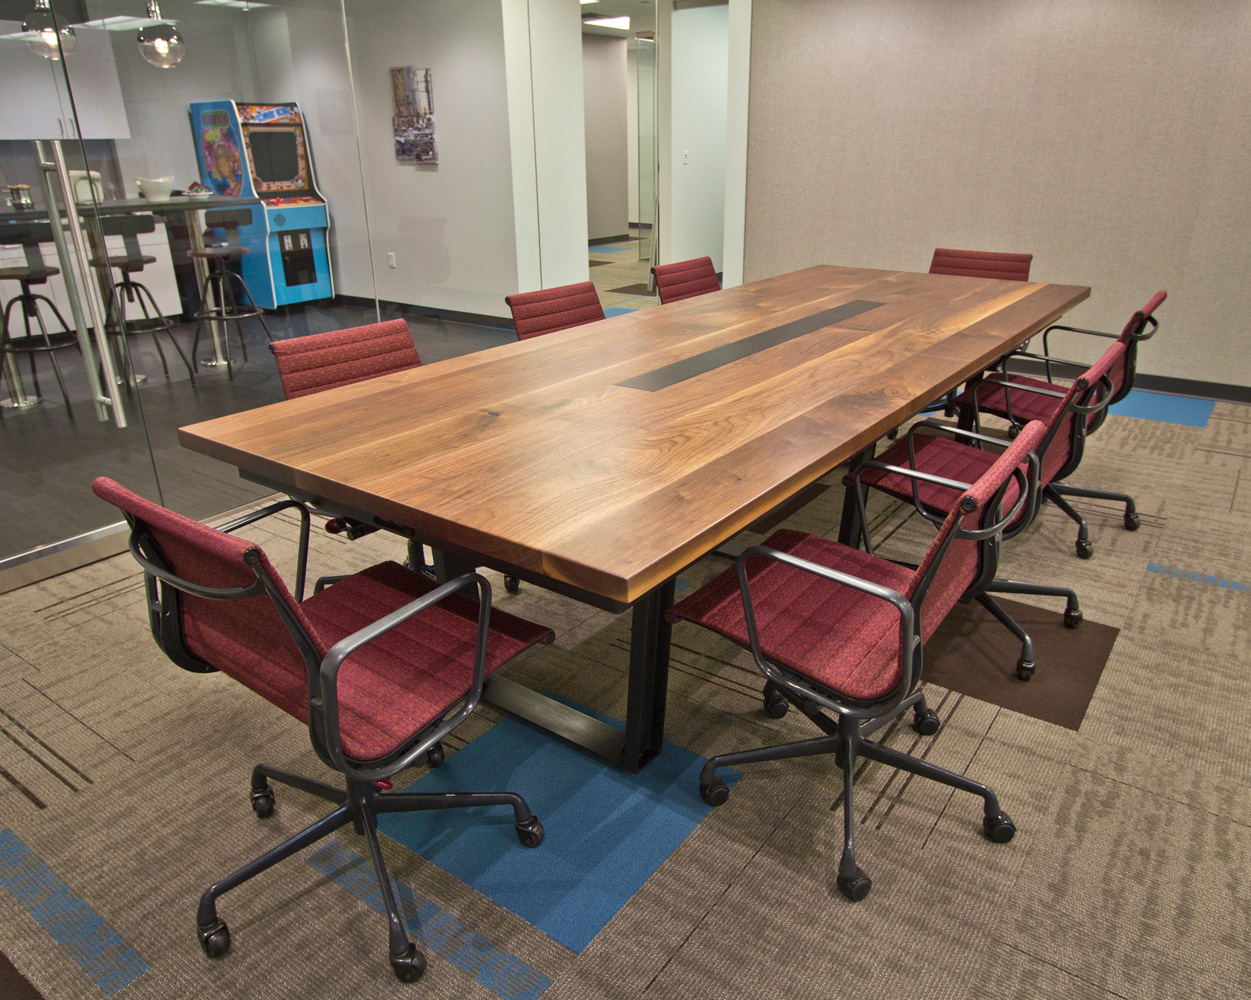 MissionStaff  Conference Room Table  reSAWN TIMBER co